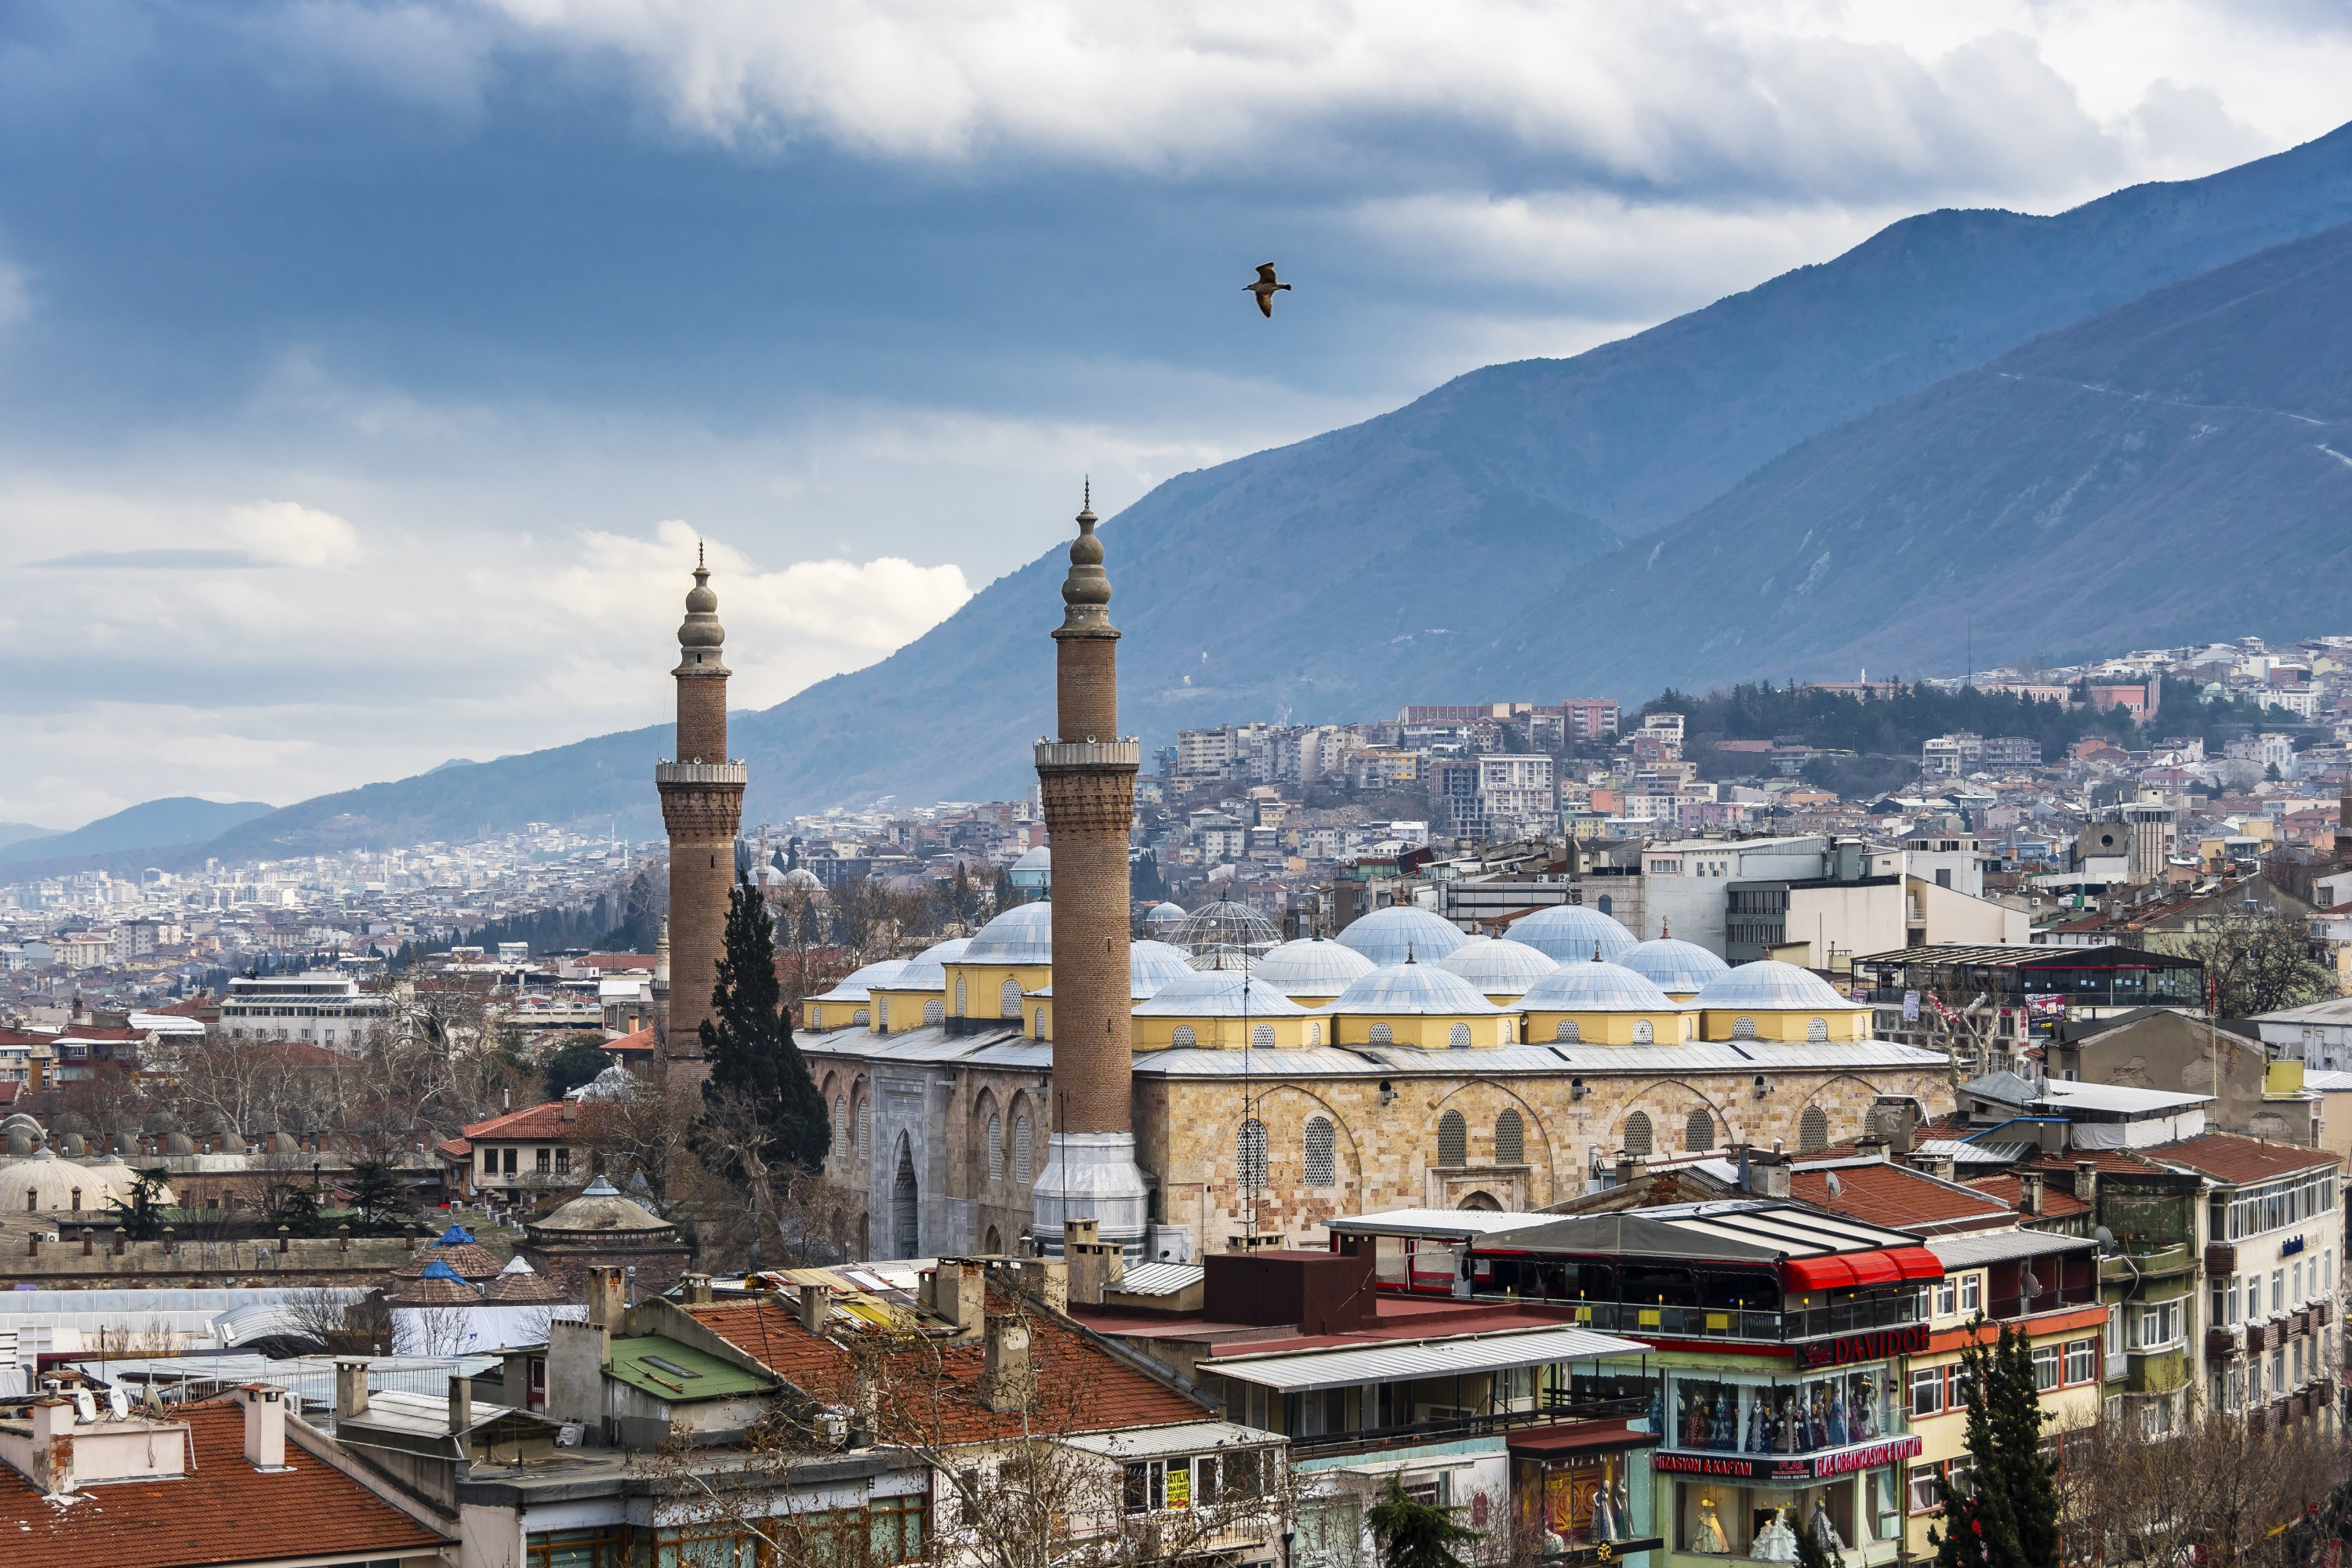 The Grand Mosque can be seen in a view from the city of Bursa, Turkey, Dec. 30, 2017. (Shutterstock Photo)